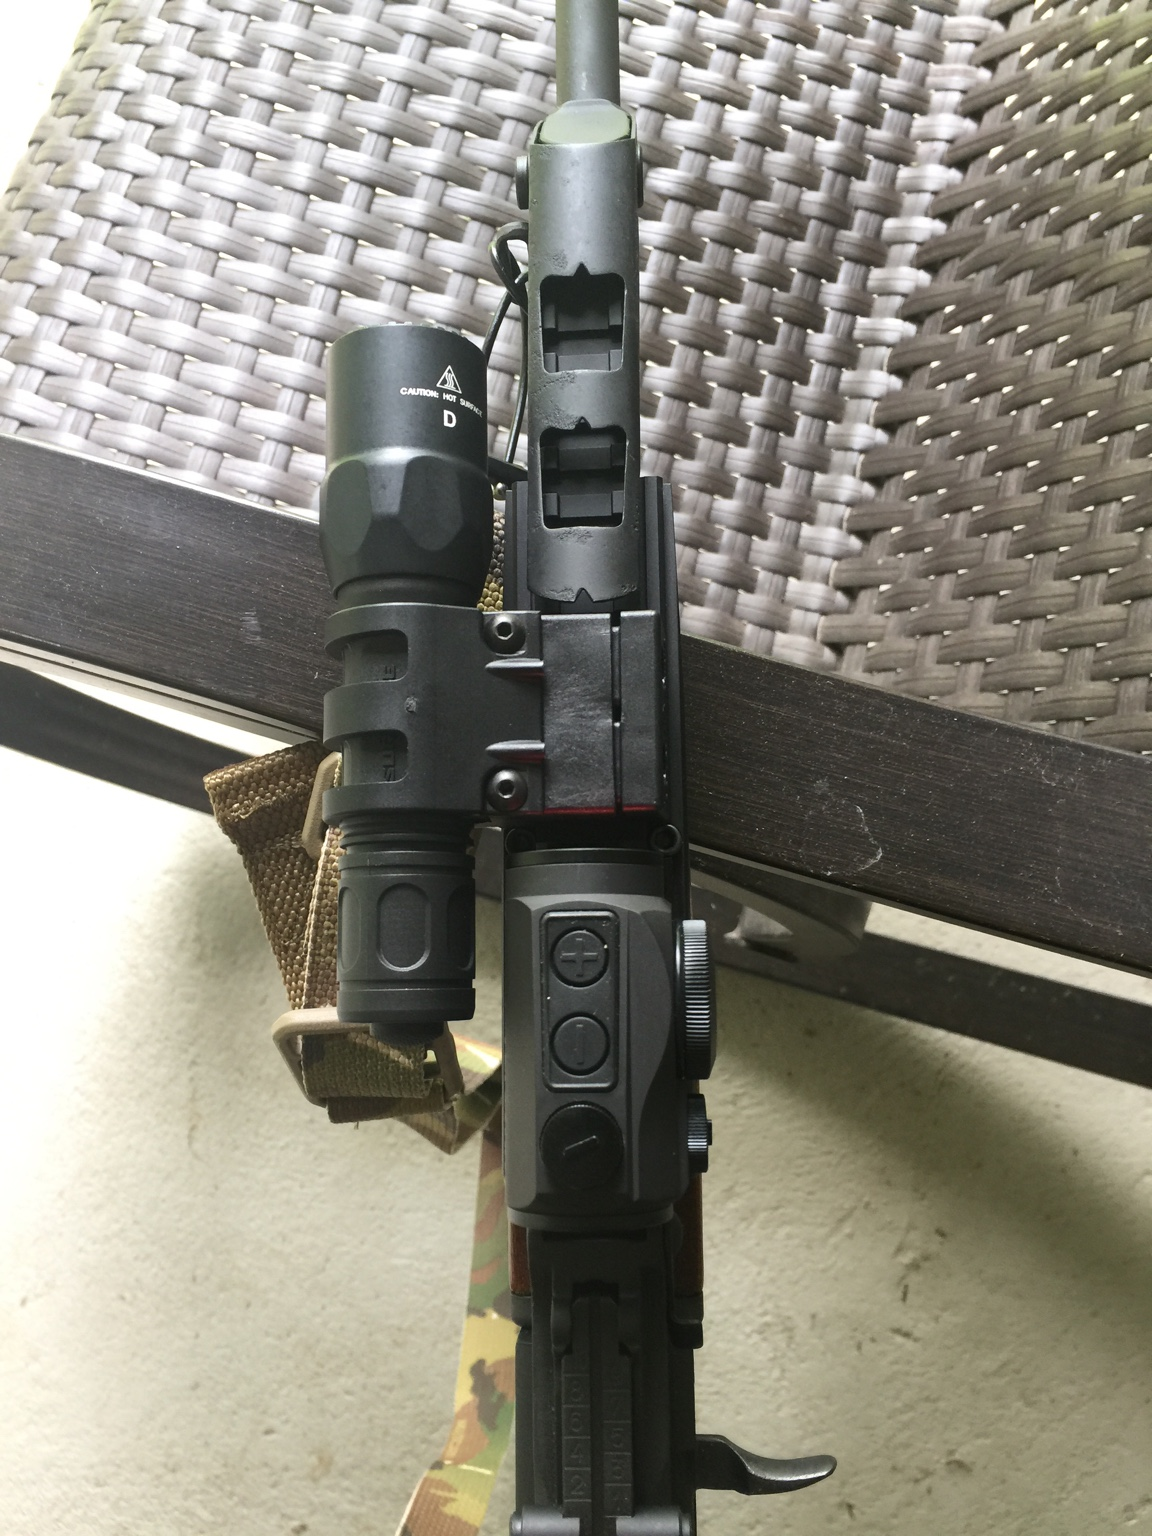 Mounting a light on AK with Ultimak - potential heat issues